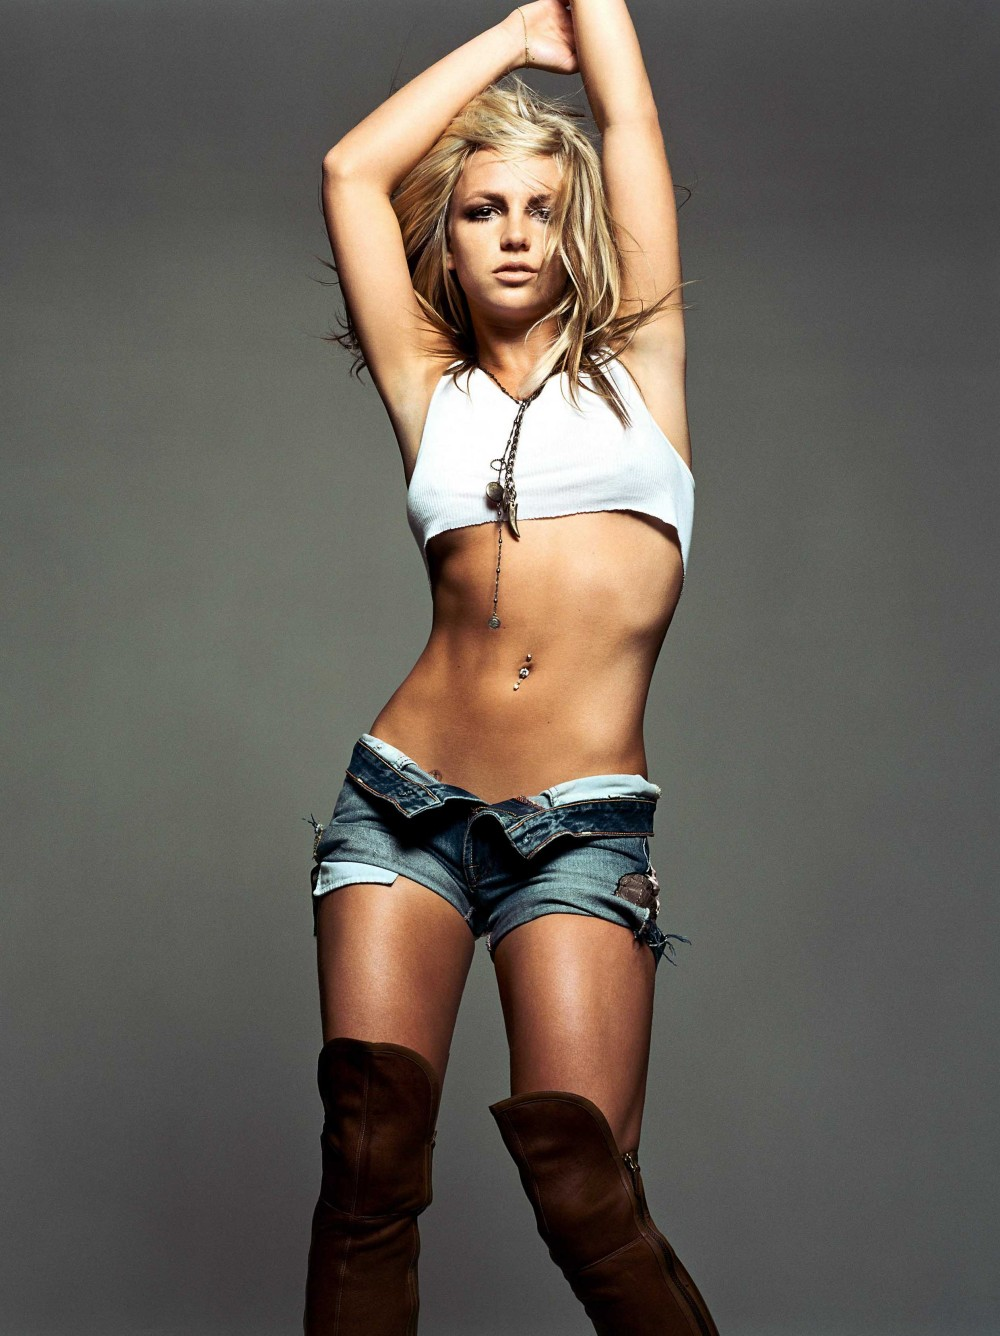 Not Britney spears hot